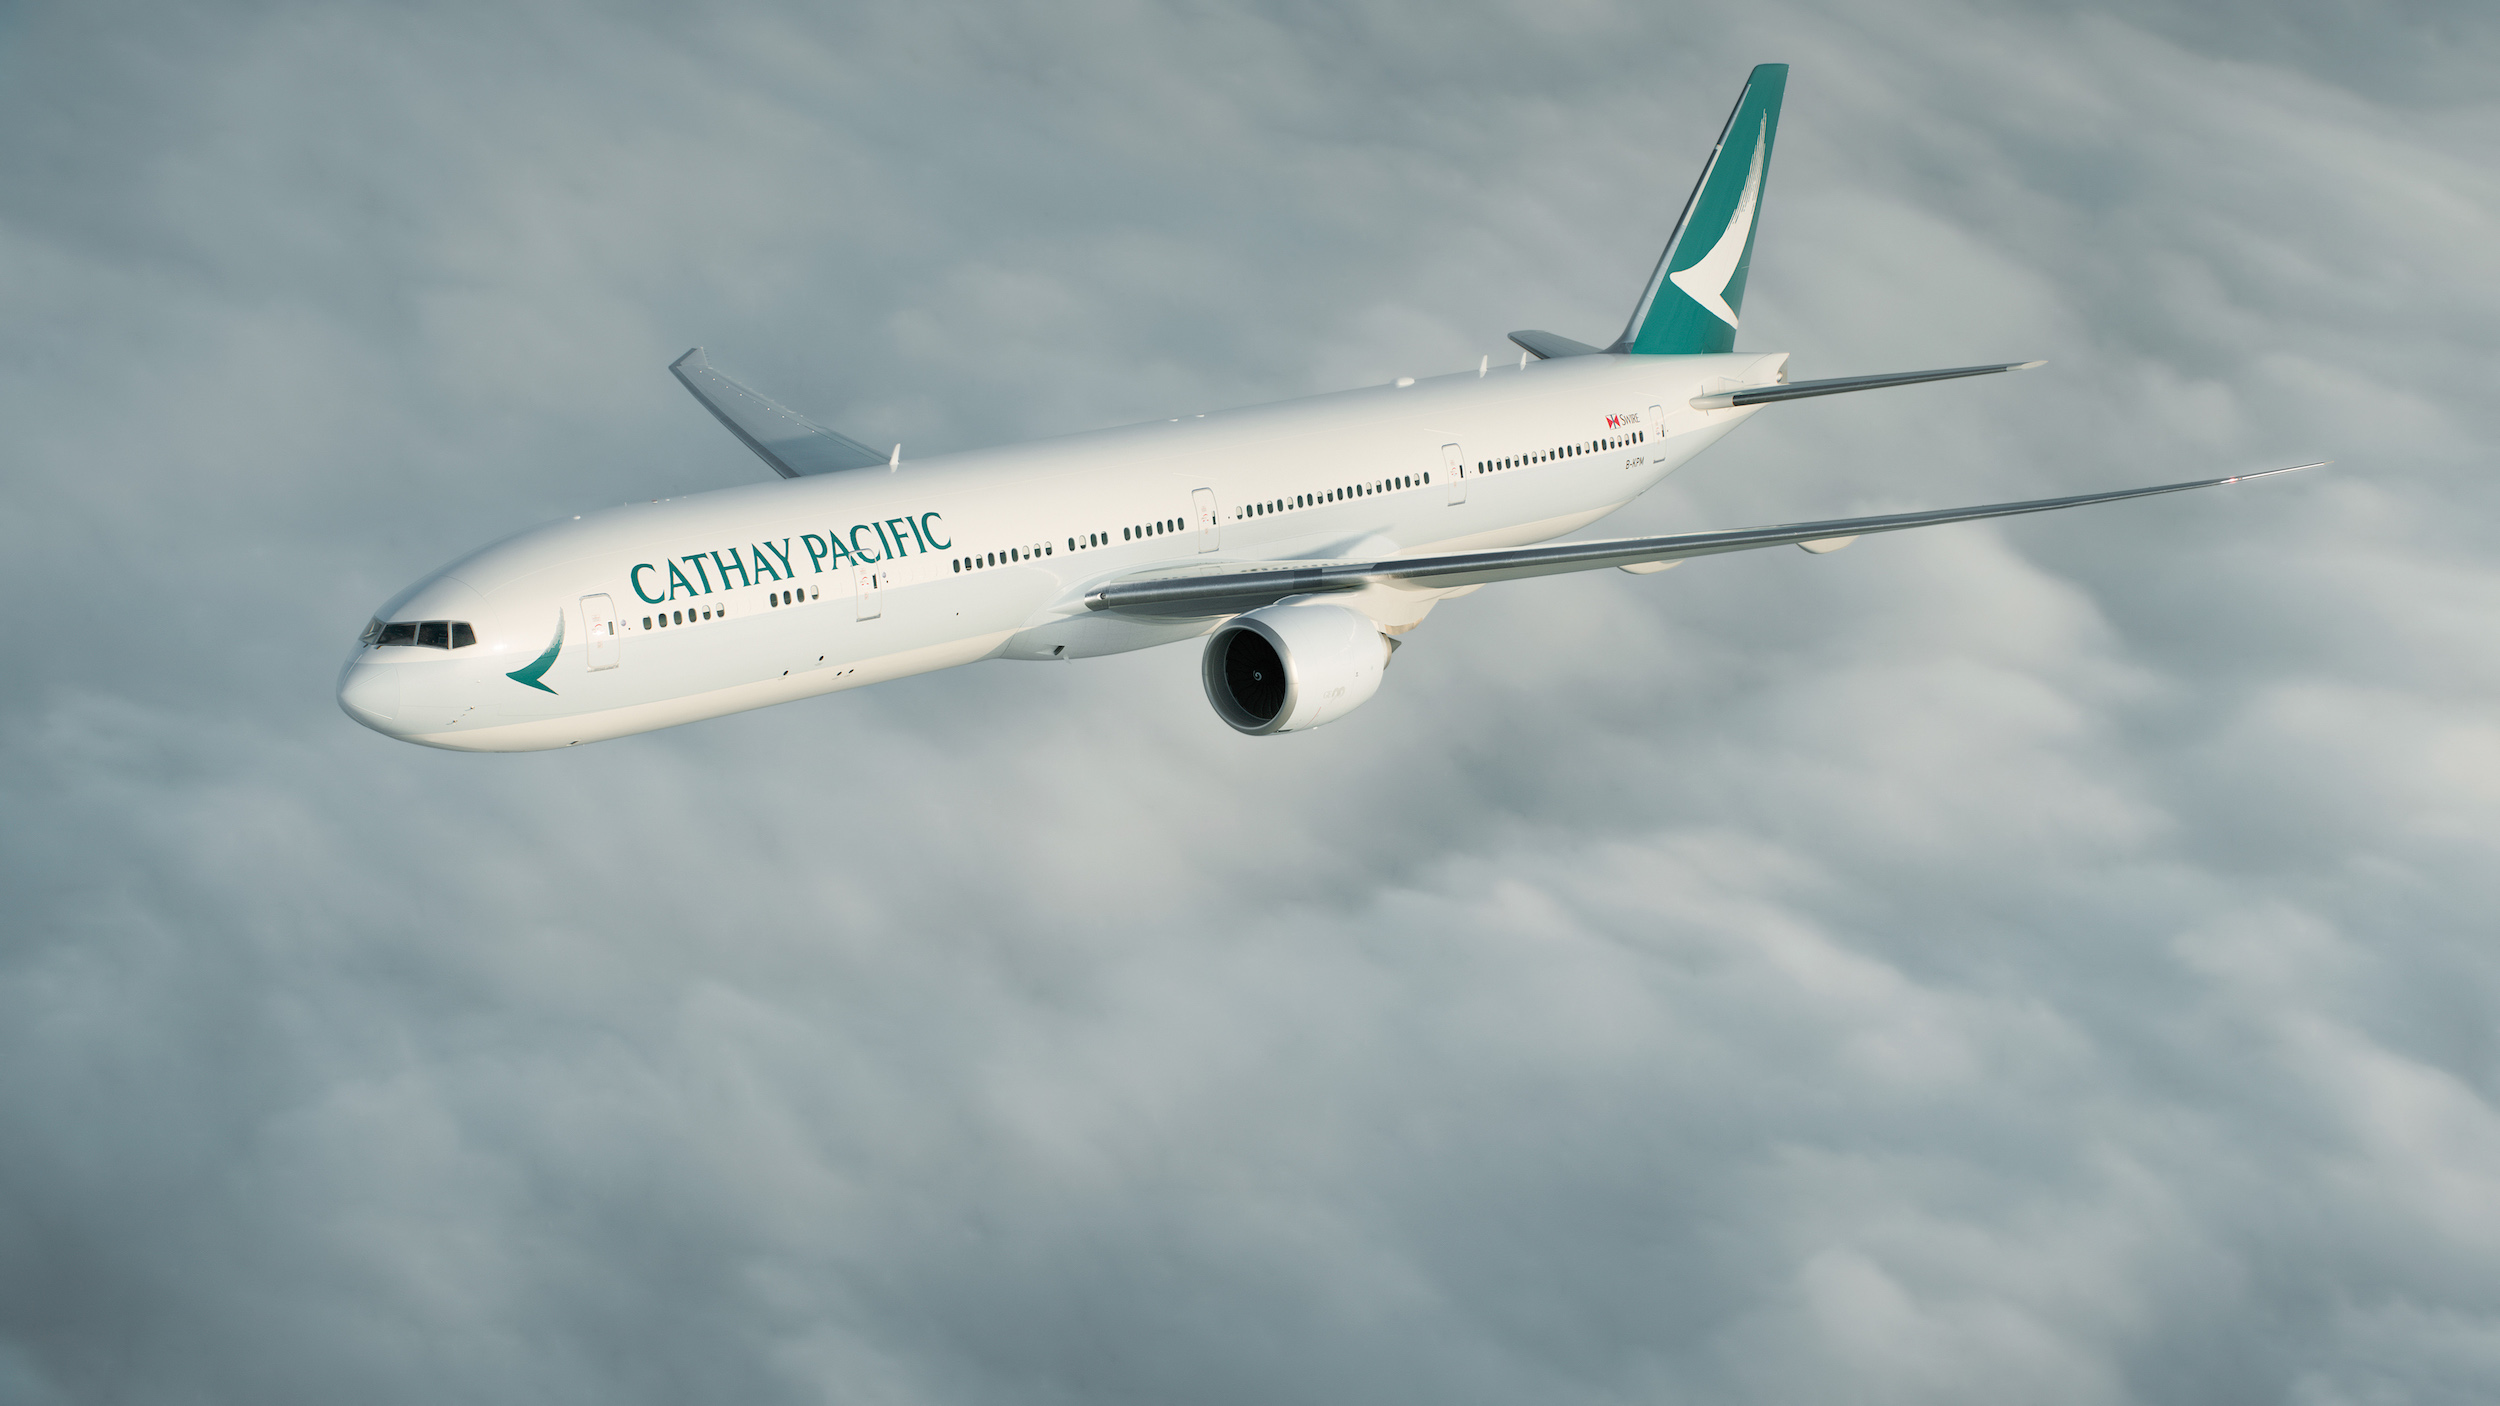 CX B77W 2 (Cathay Pacific)